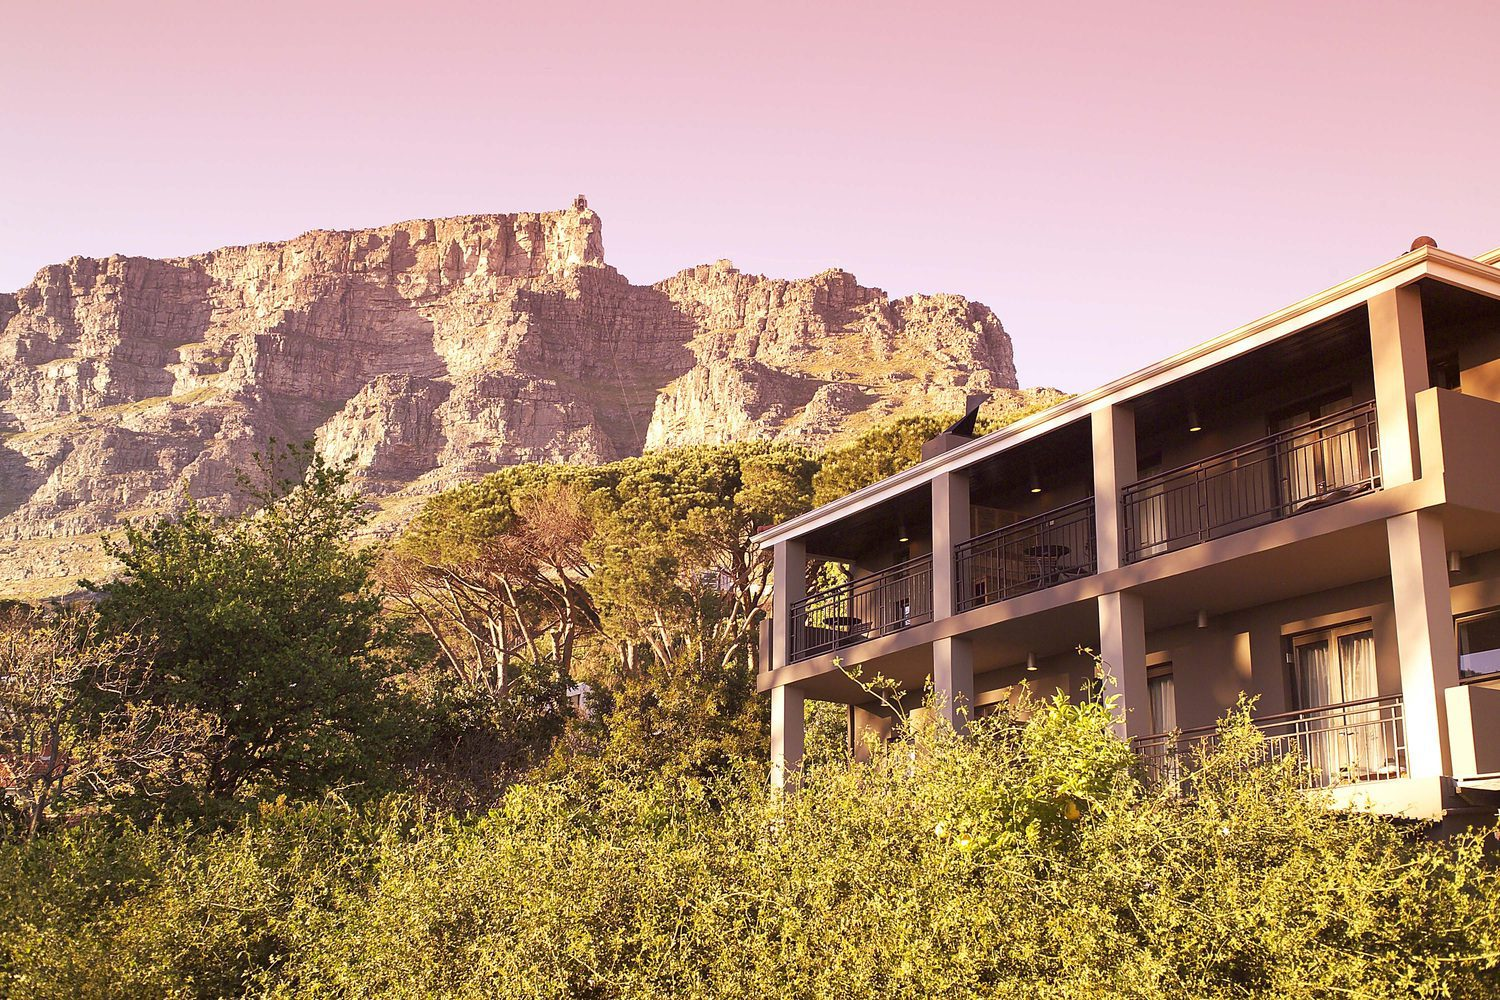 kensington place balconies overlooking trees with table mountain in the background